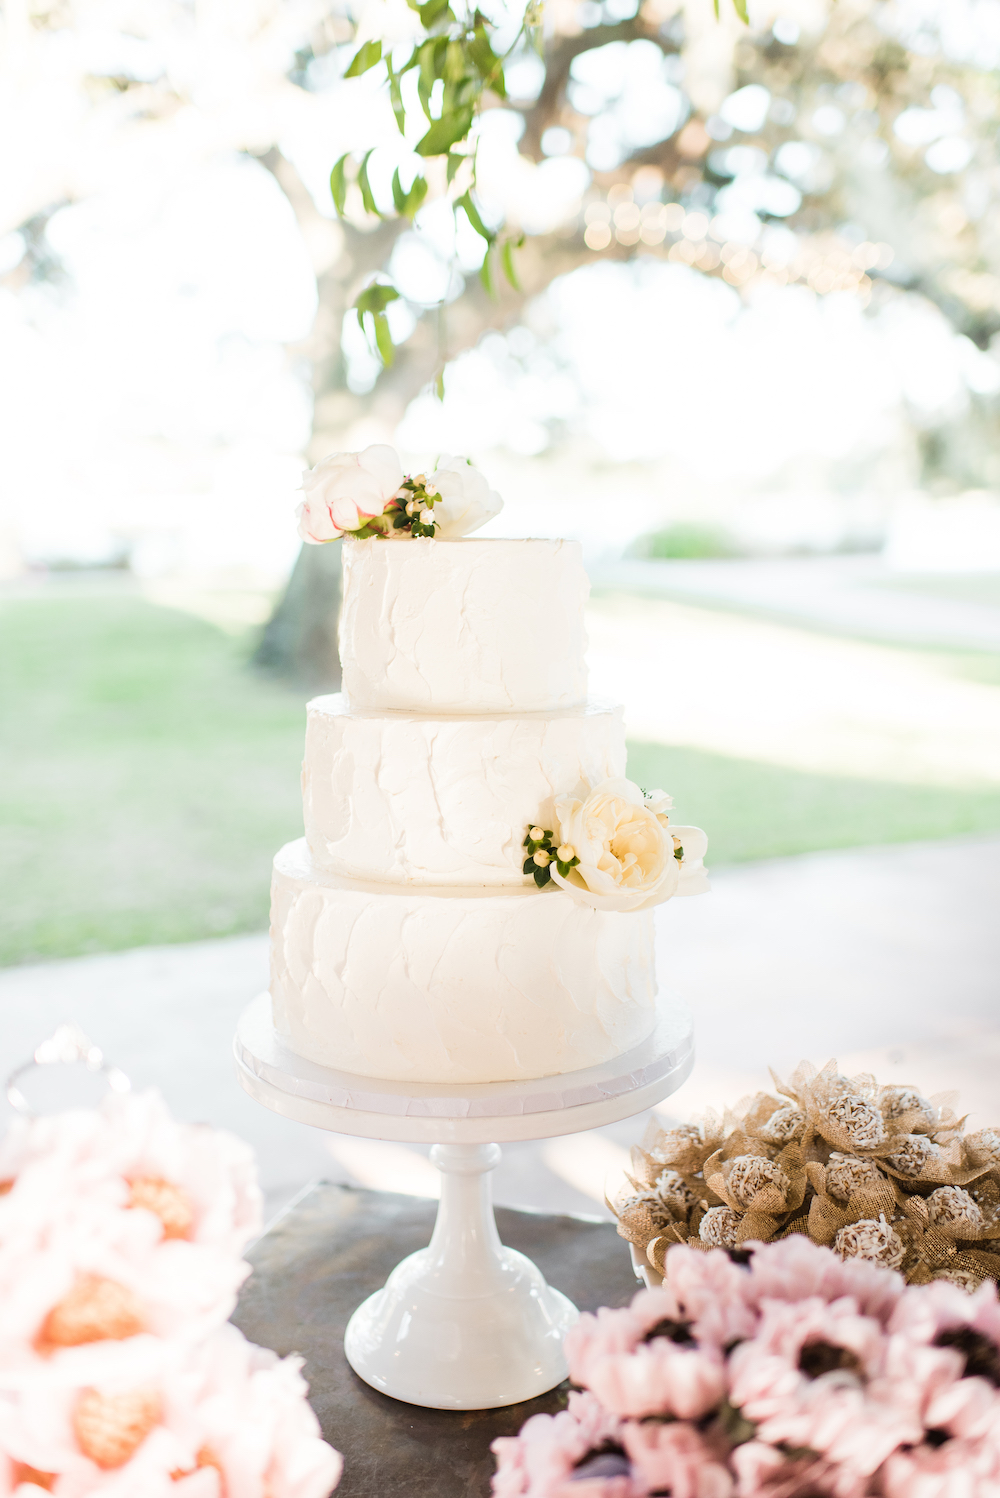 Traditional White Wedding Cake Design